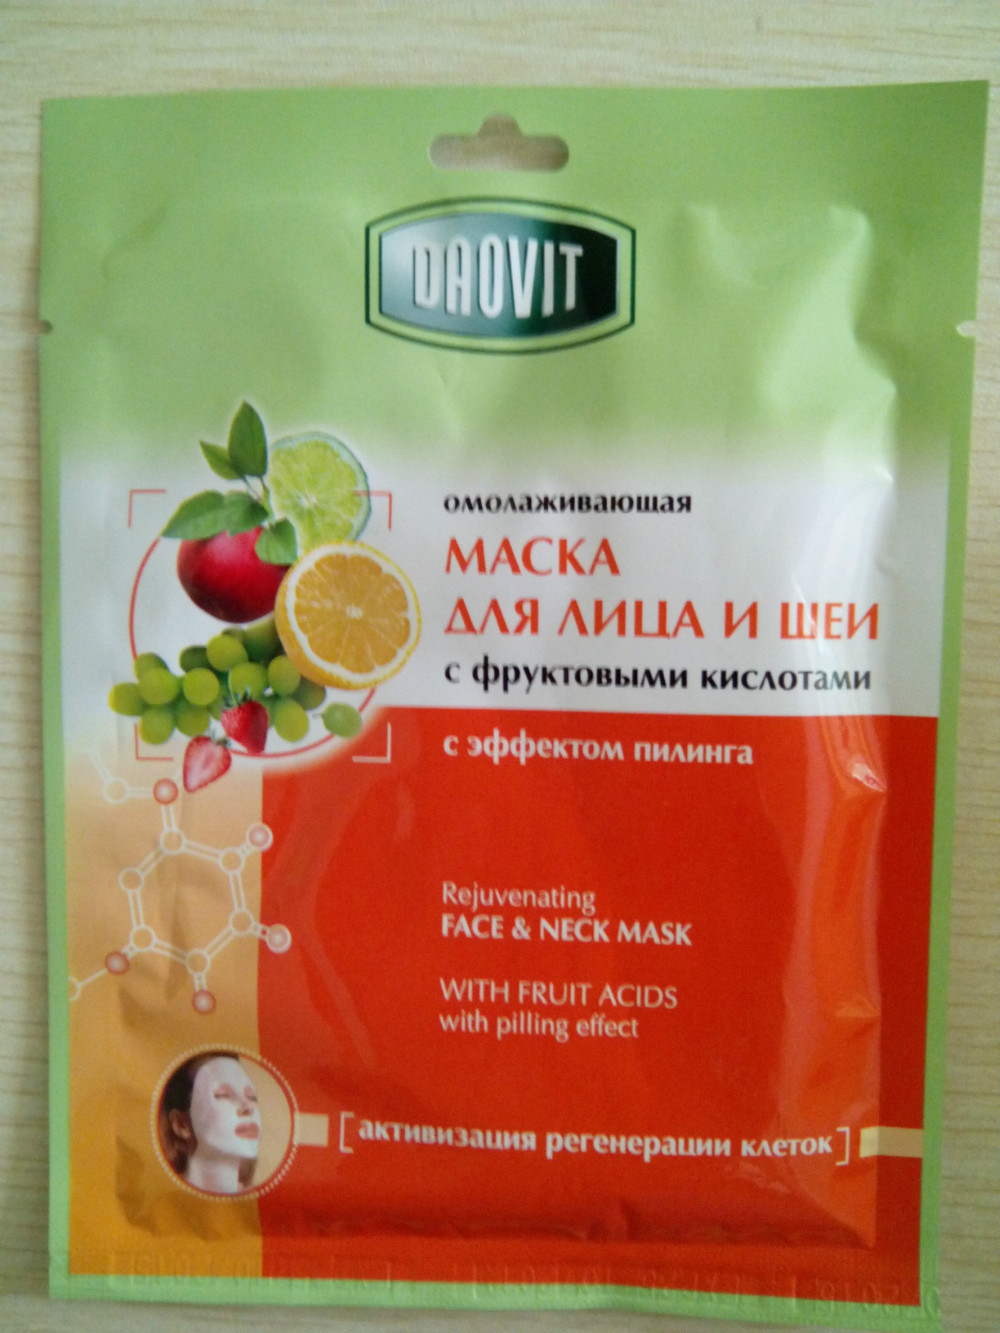 hyaluronic acid facial mask fruit extract provides skin vitamins,moisturizing face neck - My beauty bar store